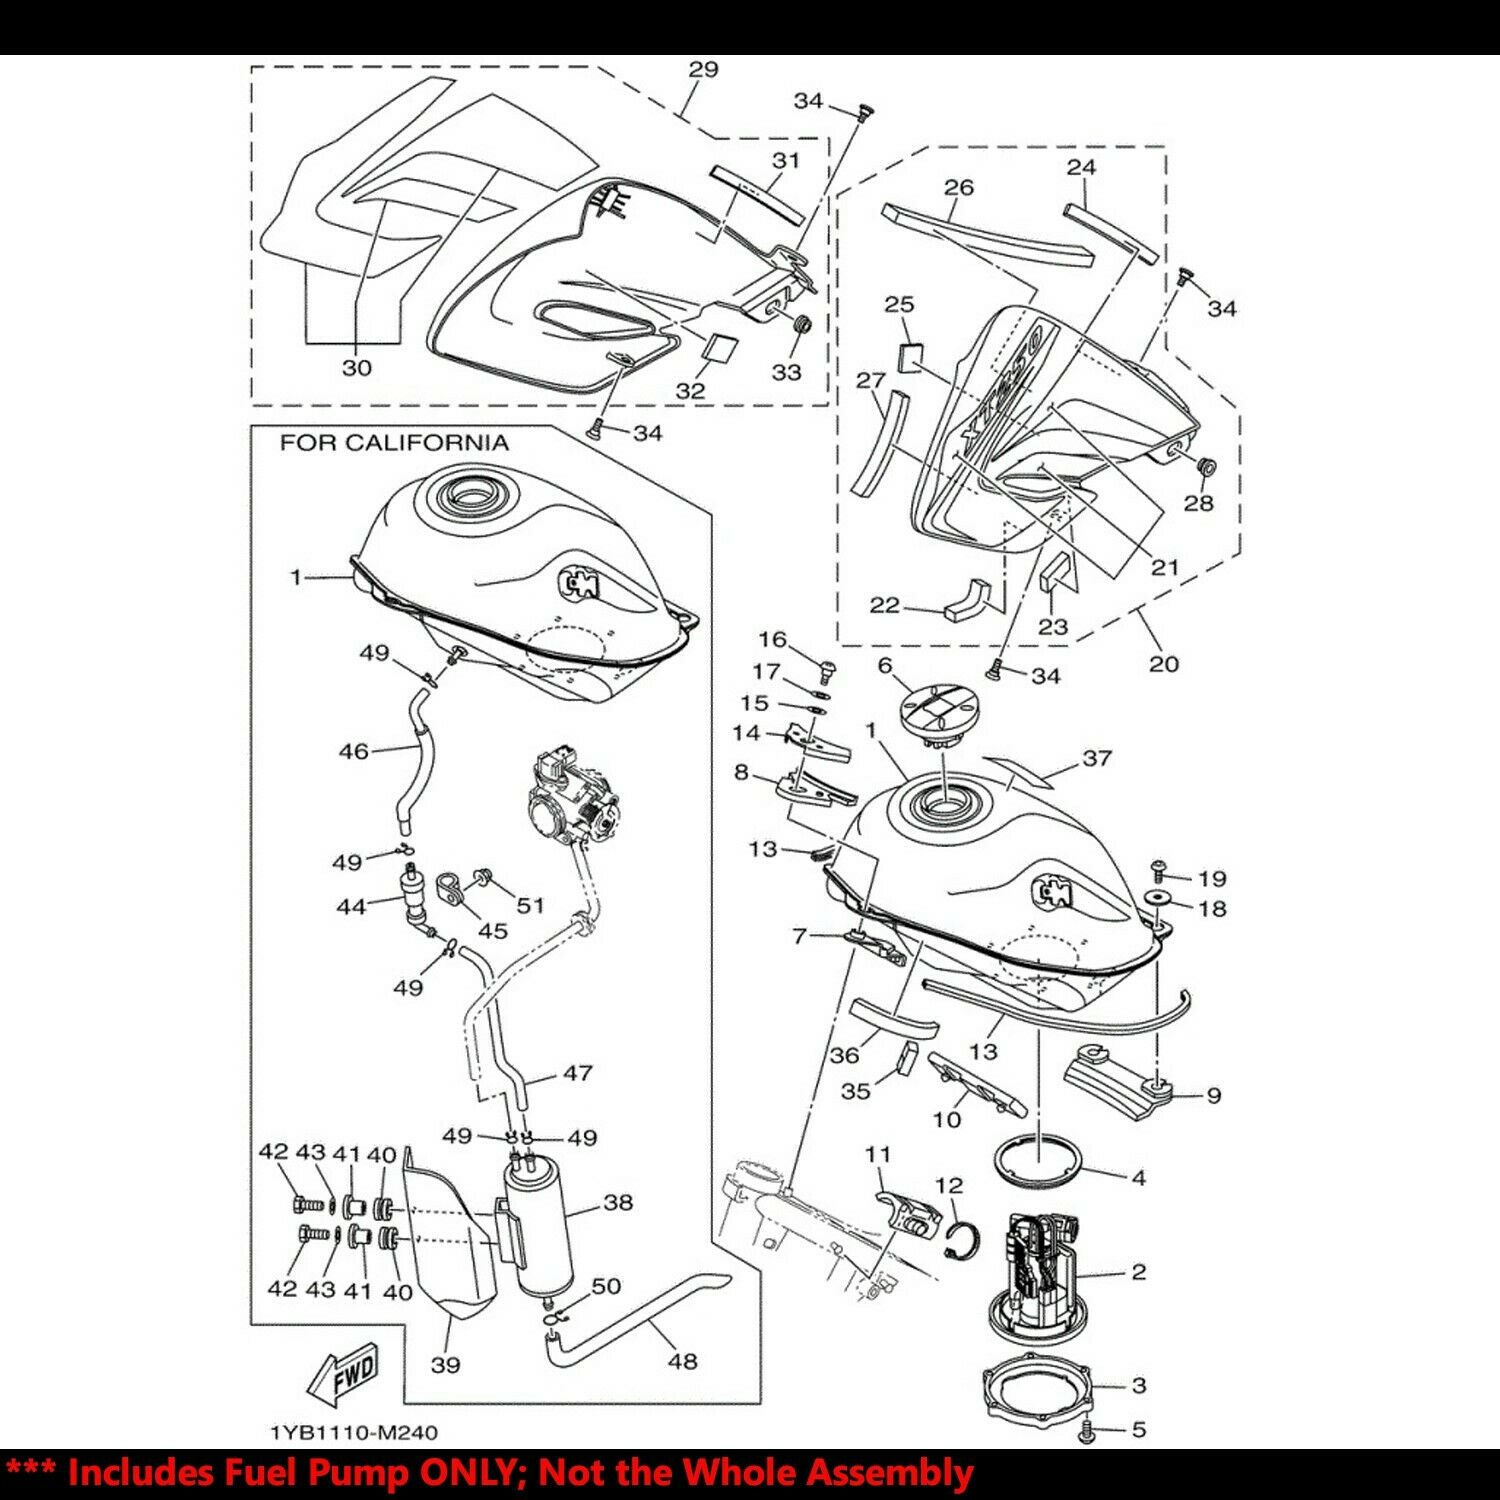 OE Replacement EFI Fuel Pump+Filter/Strainer 15-18 YZFR3